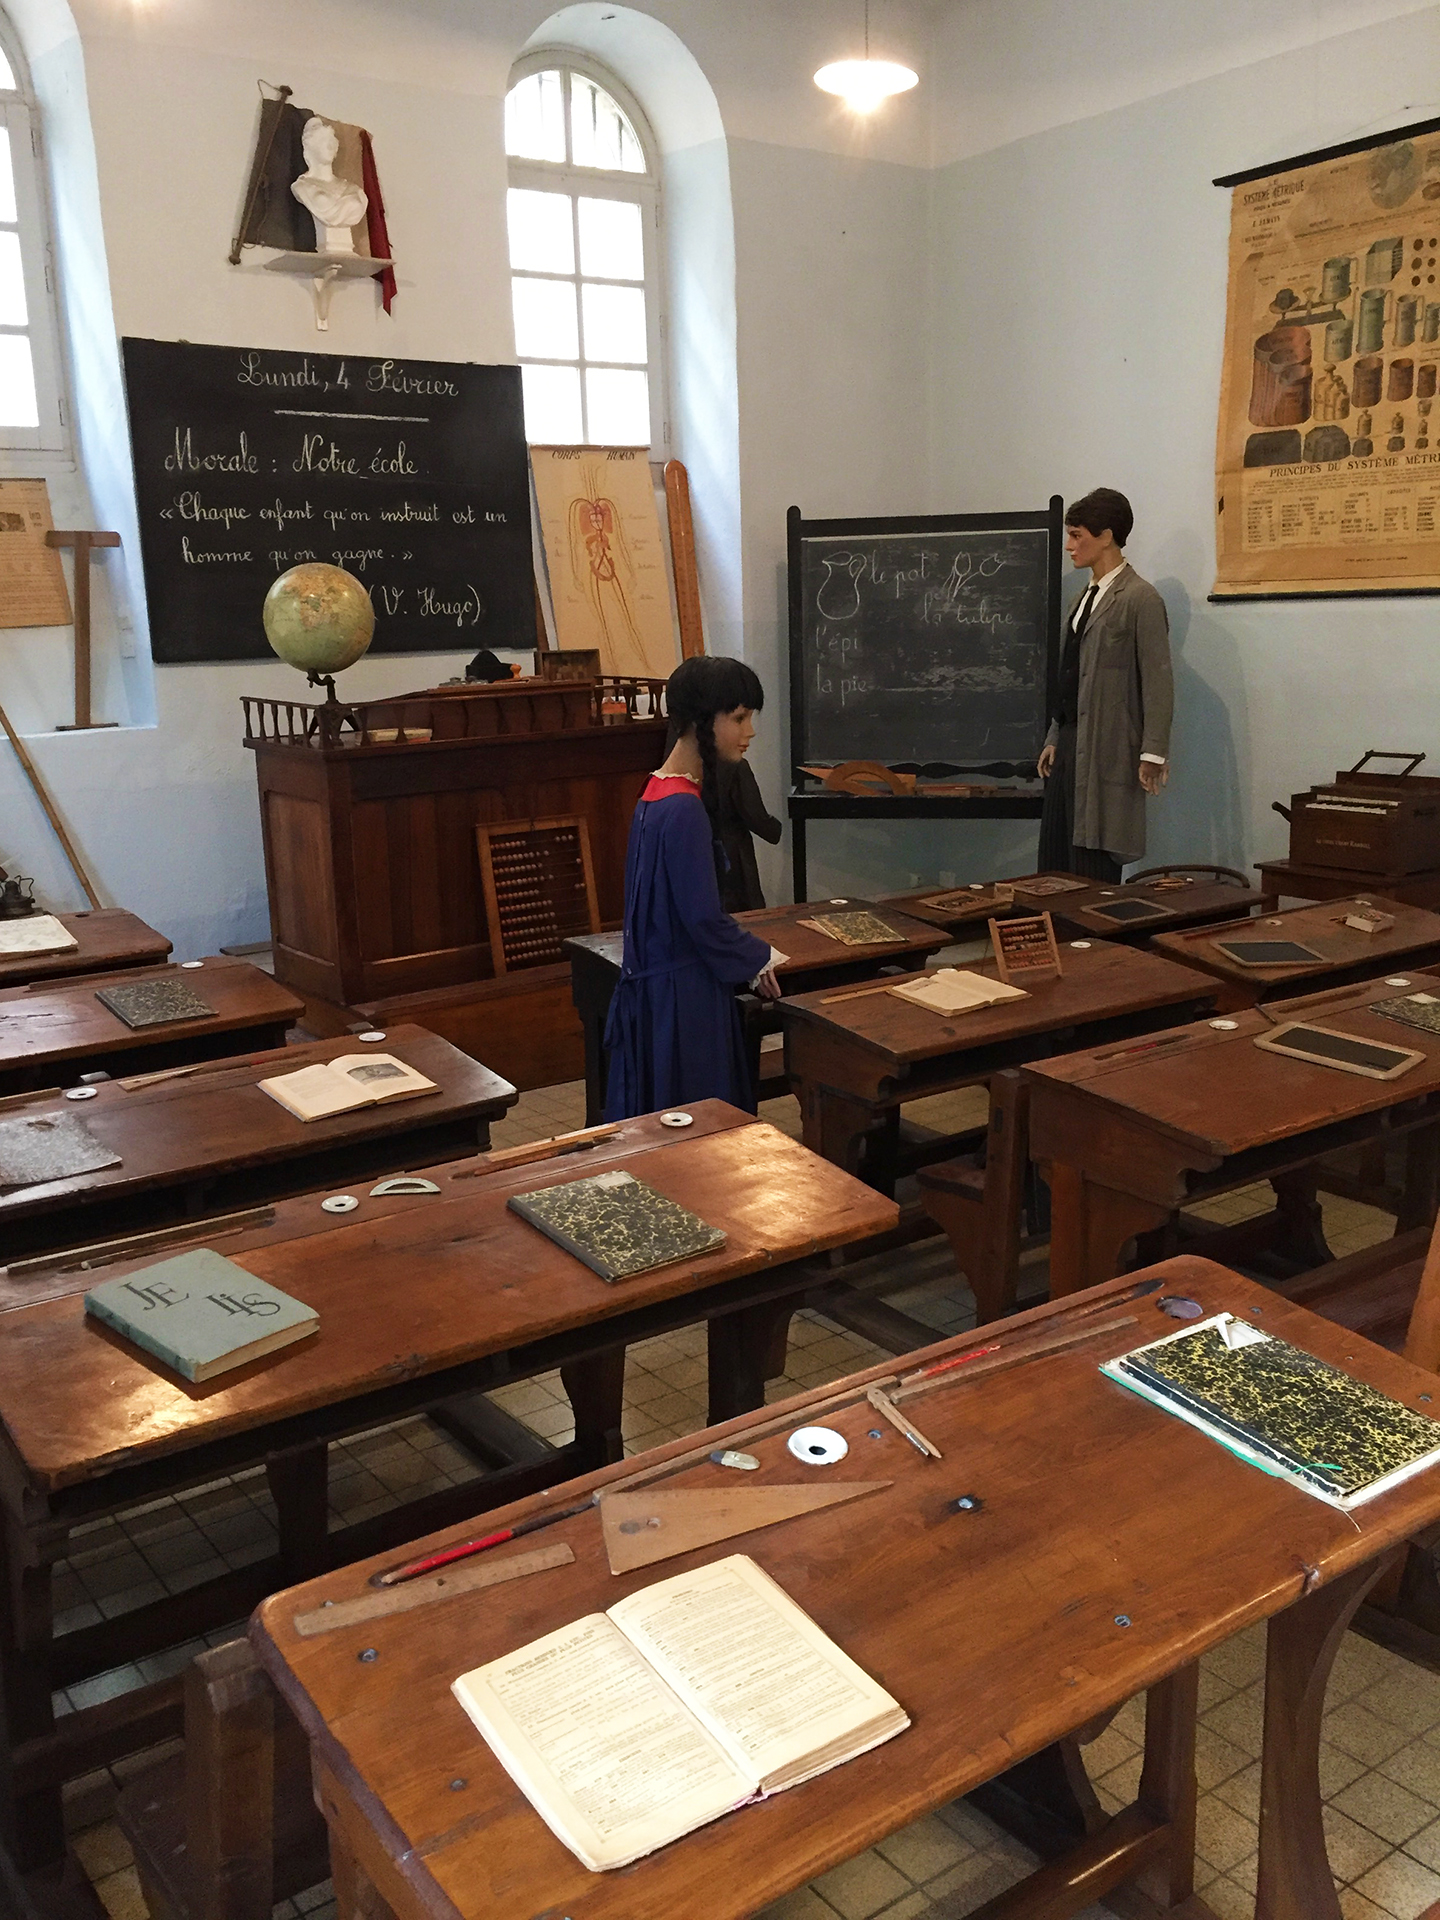 Old-fashioned classroom at Musée de l'Ecole in Carcassonne